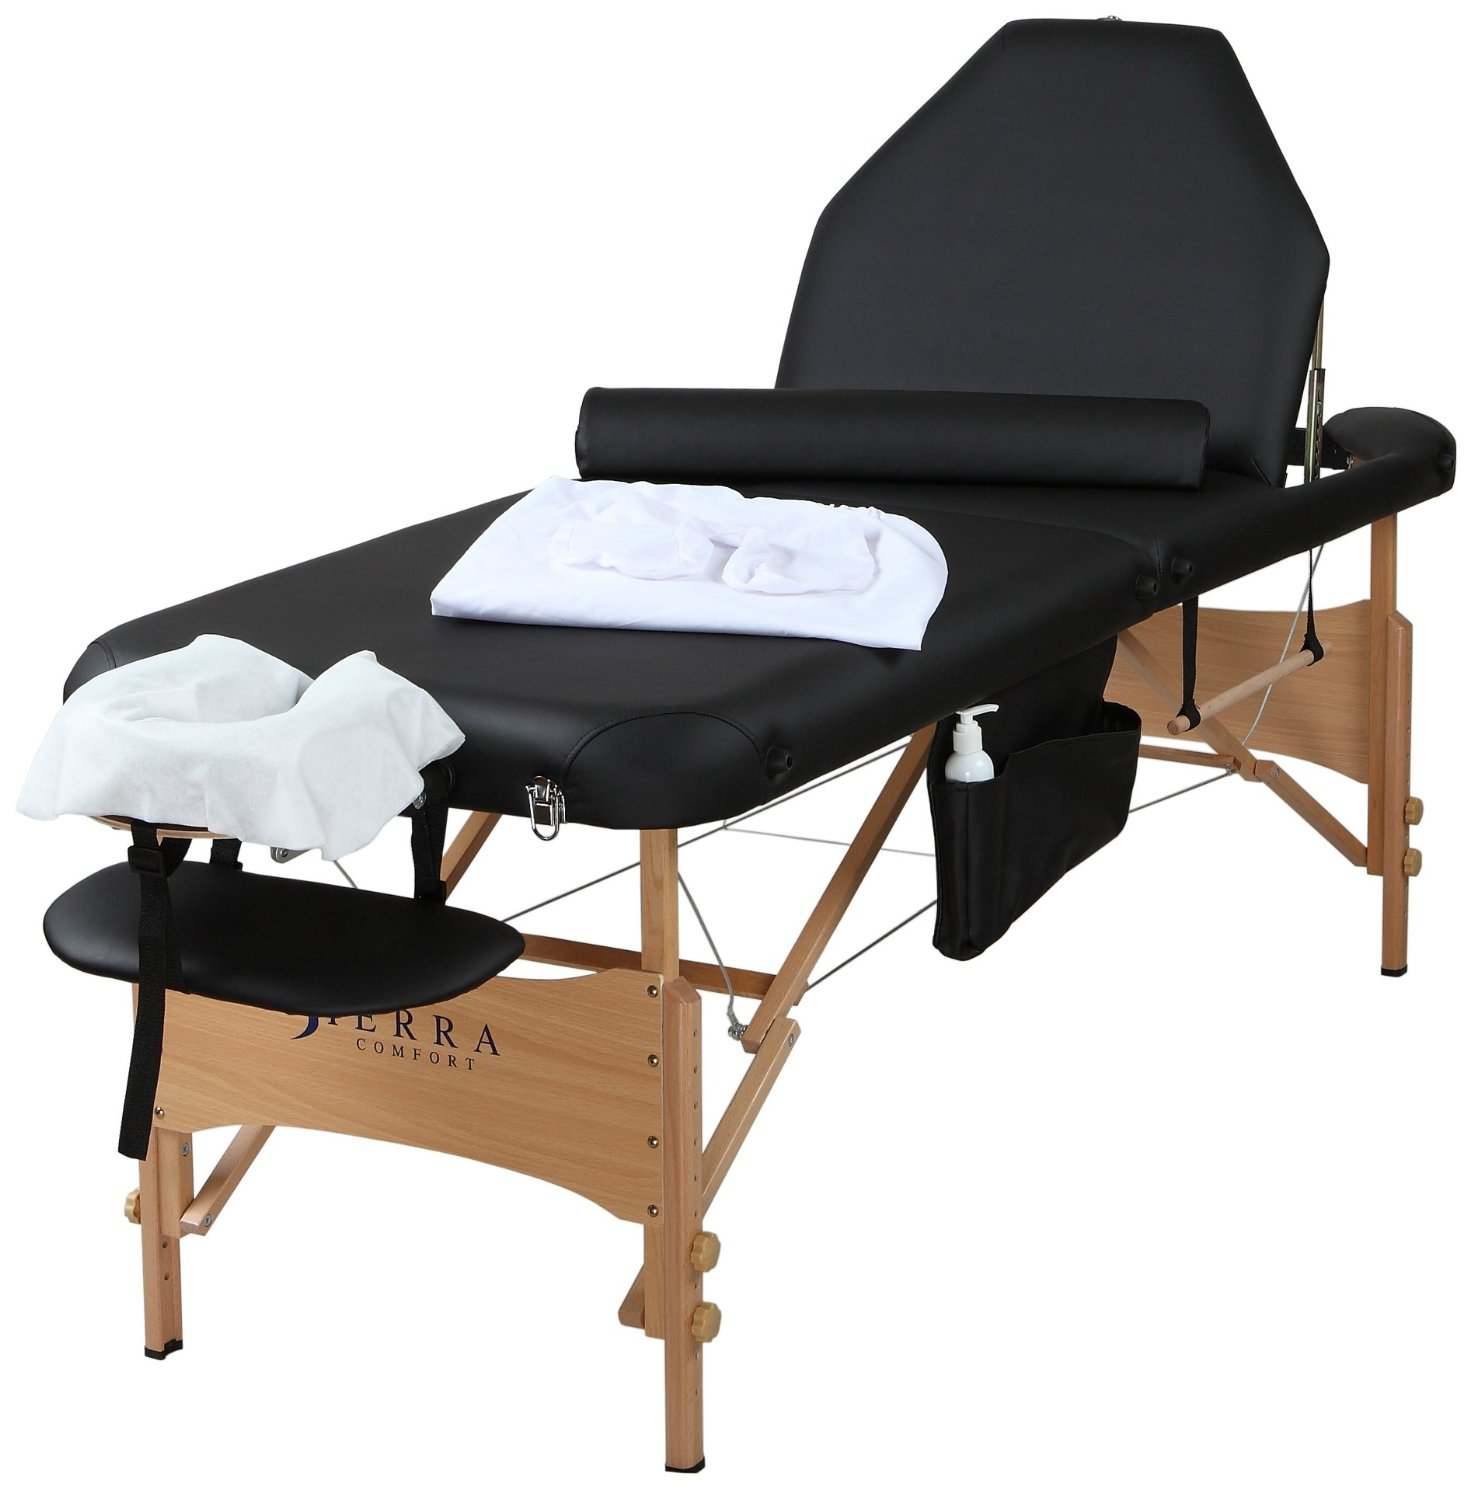 Sierra Comfort SC-903 Adjustable Back Rest Portable Massage Package